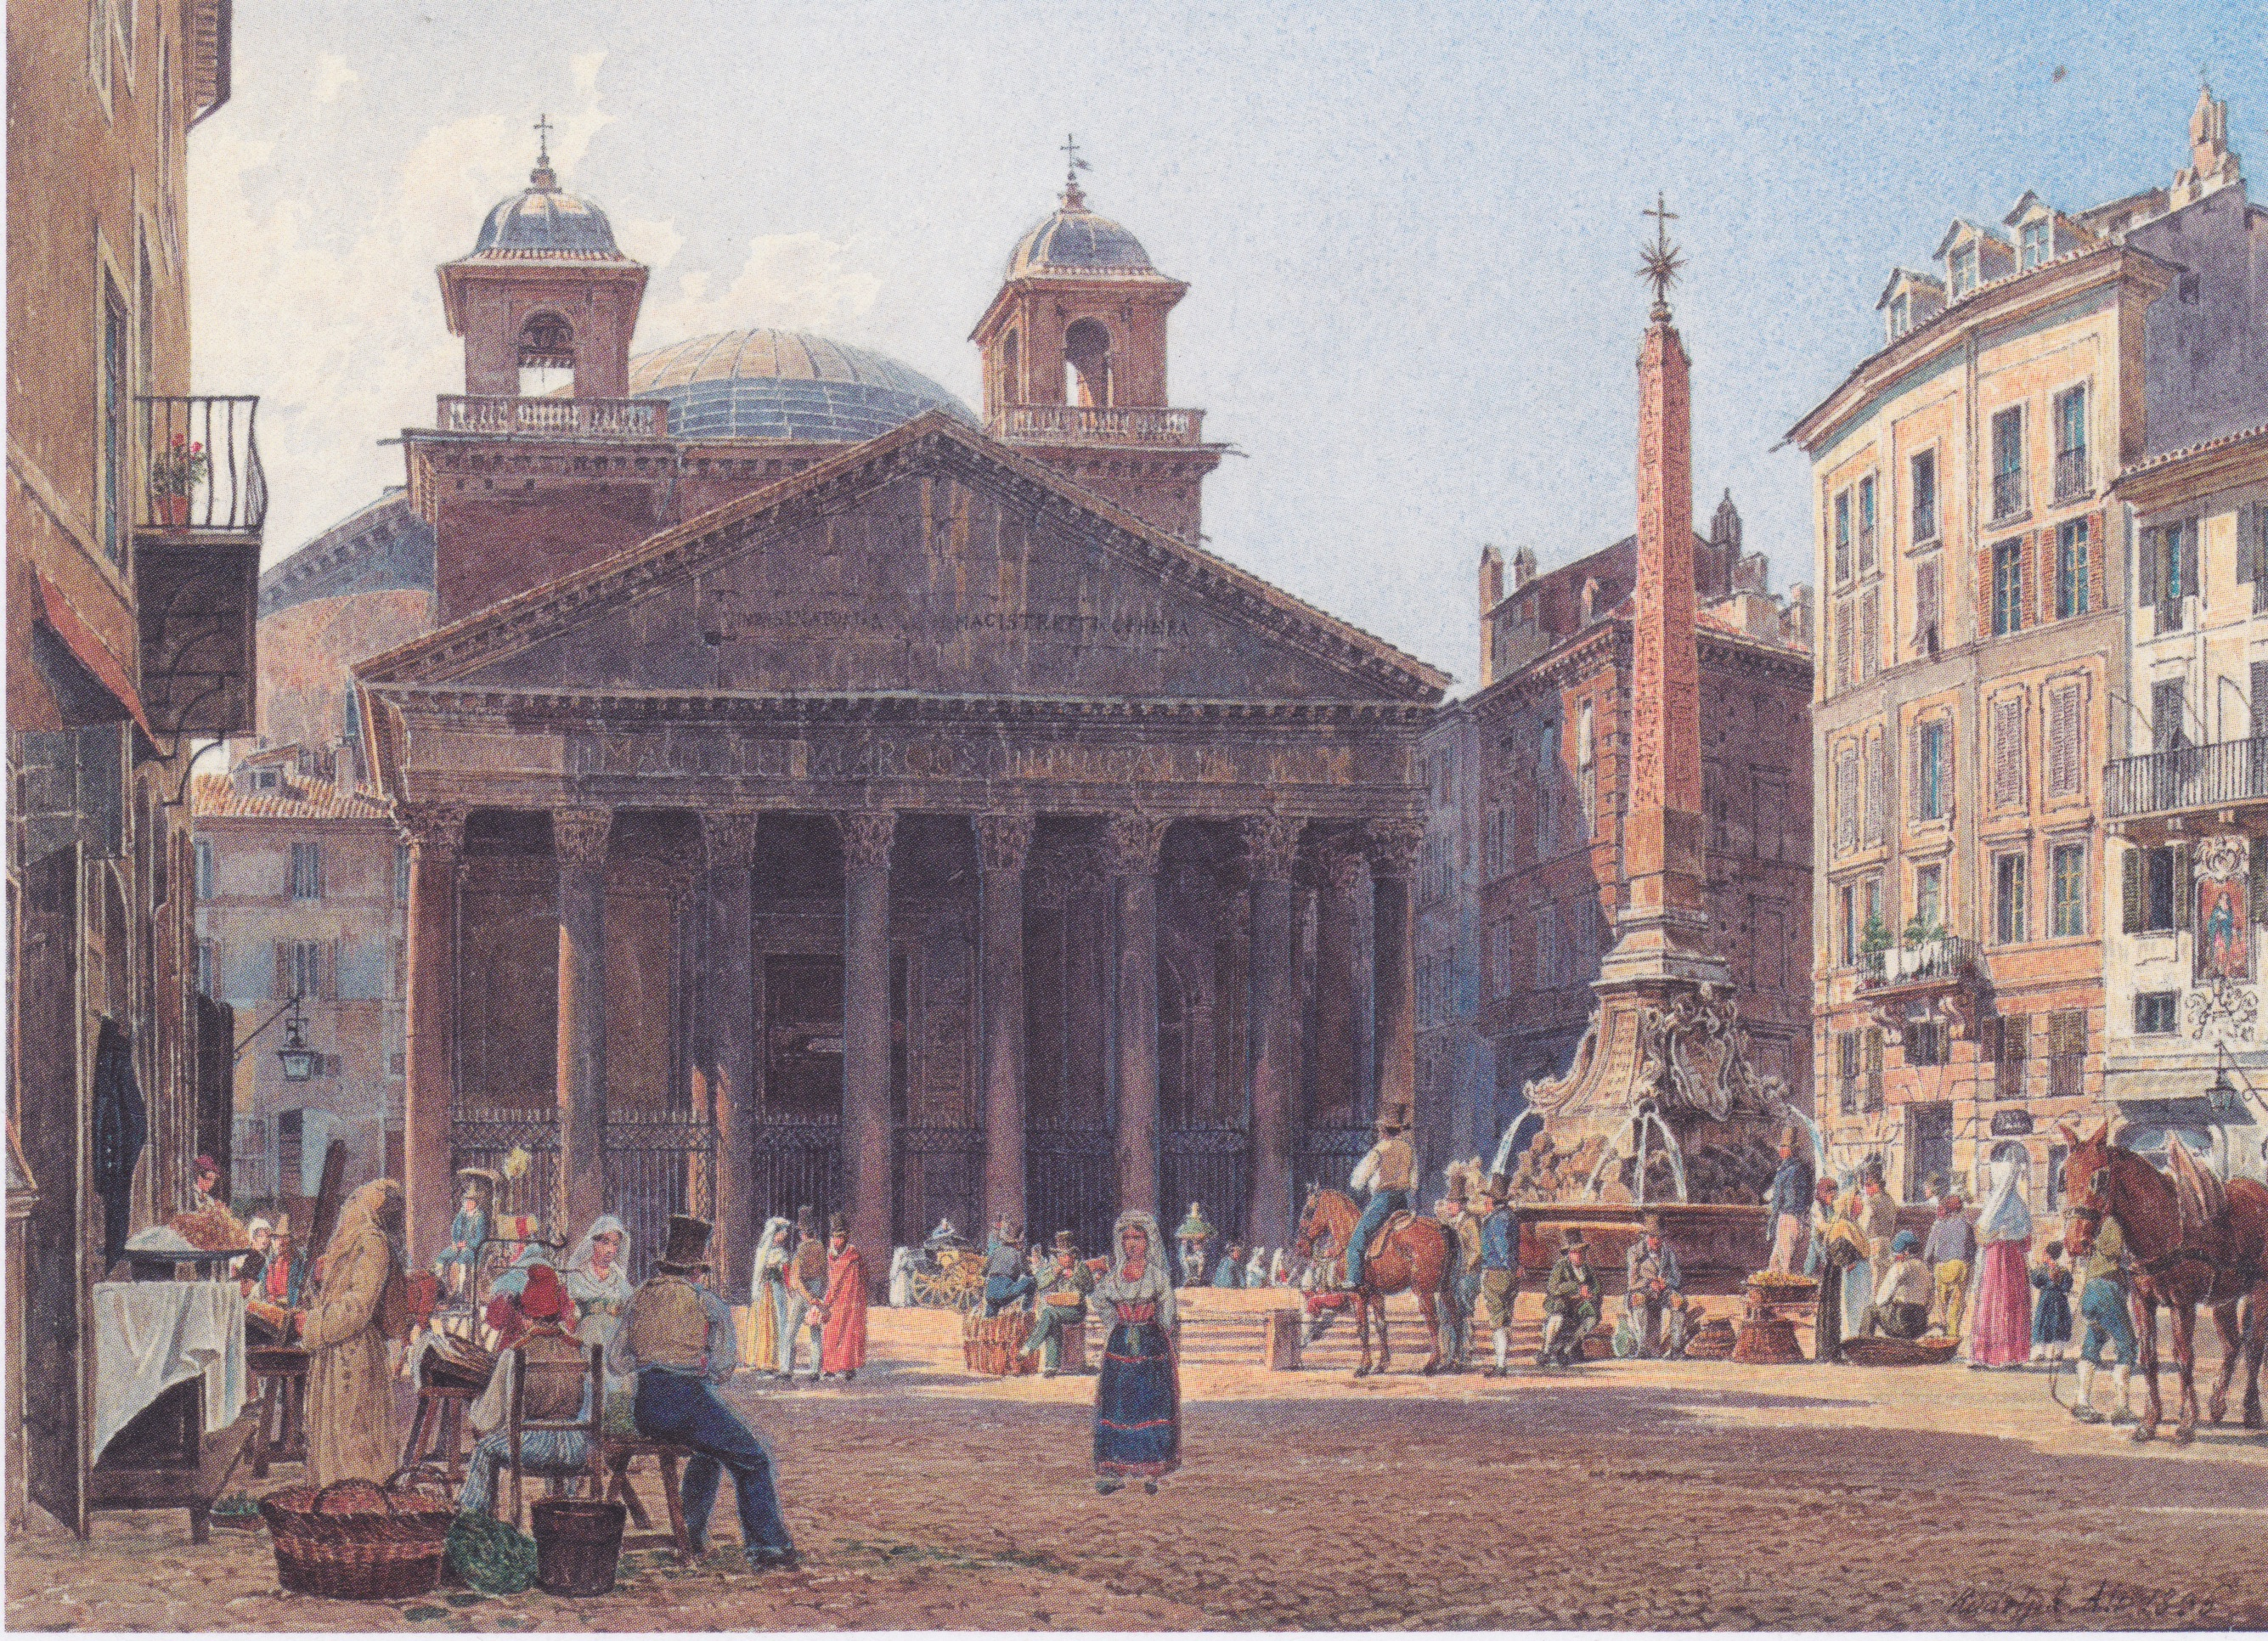 The Pantheon and the Piazza della Rotonda in Rome, 1835